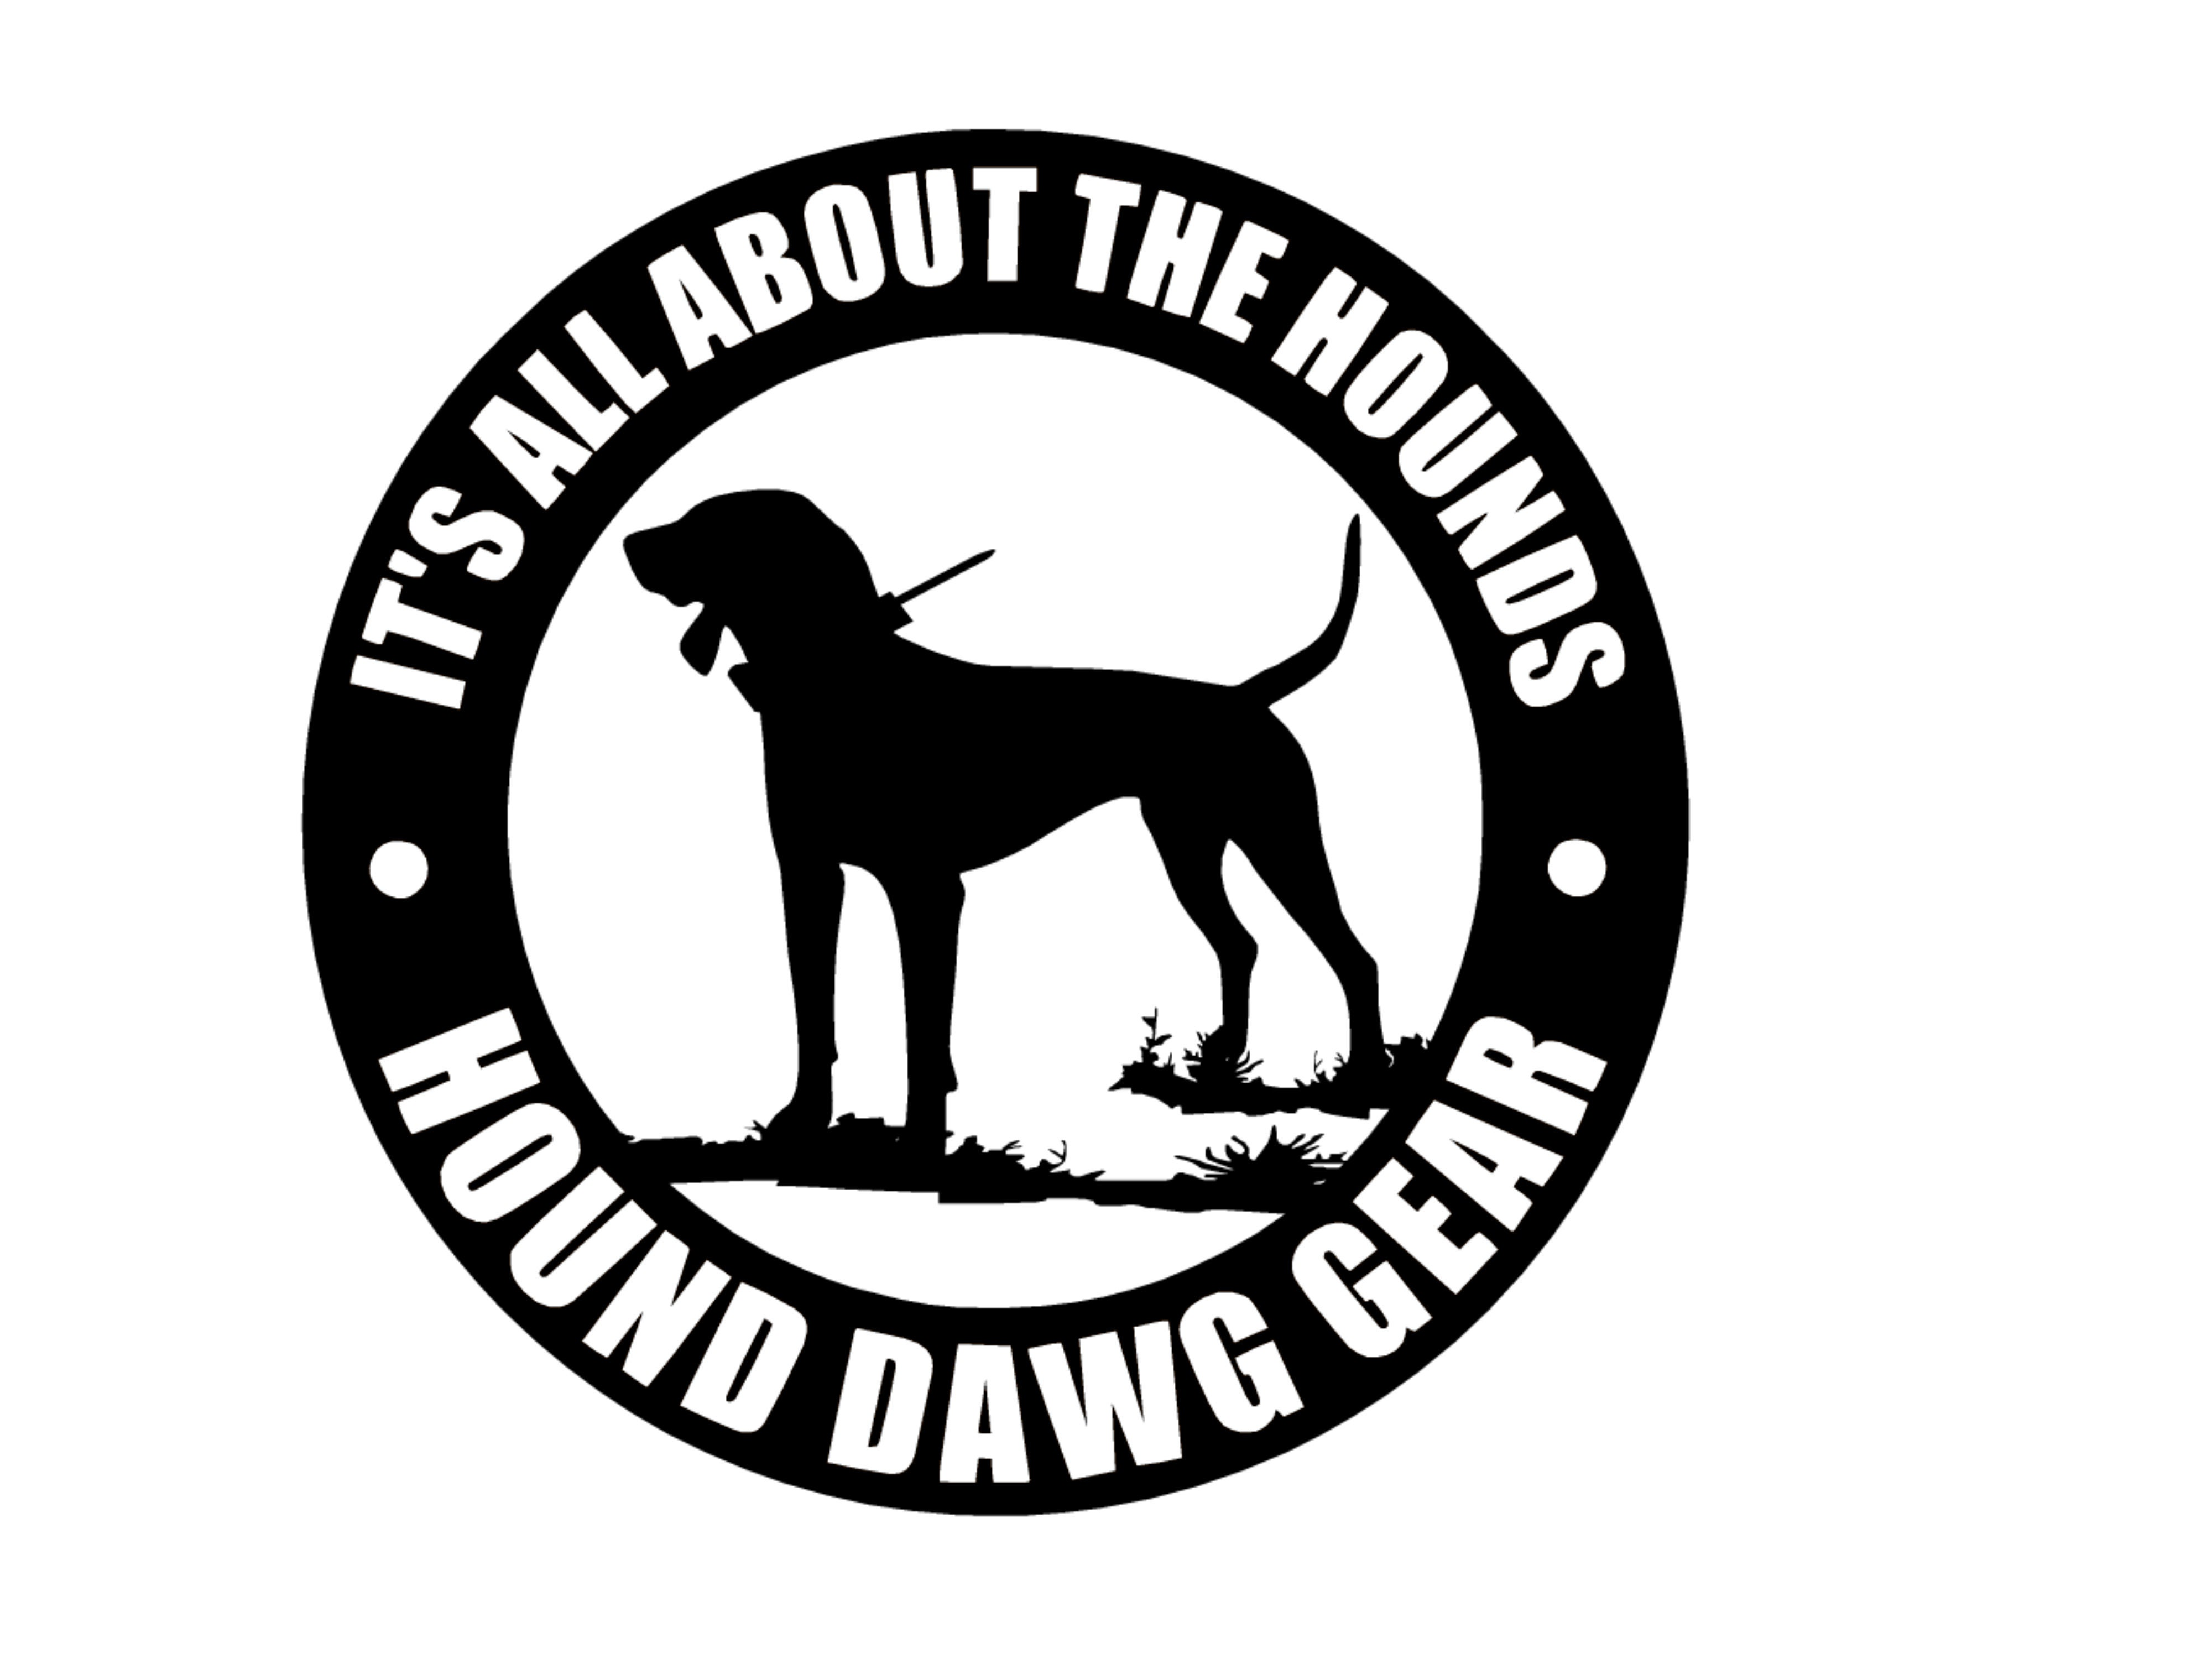 Hounddawggear By Hlg